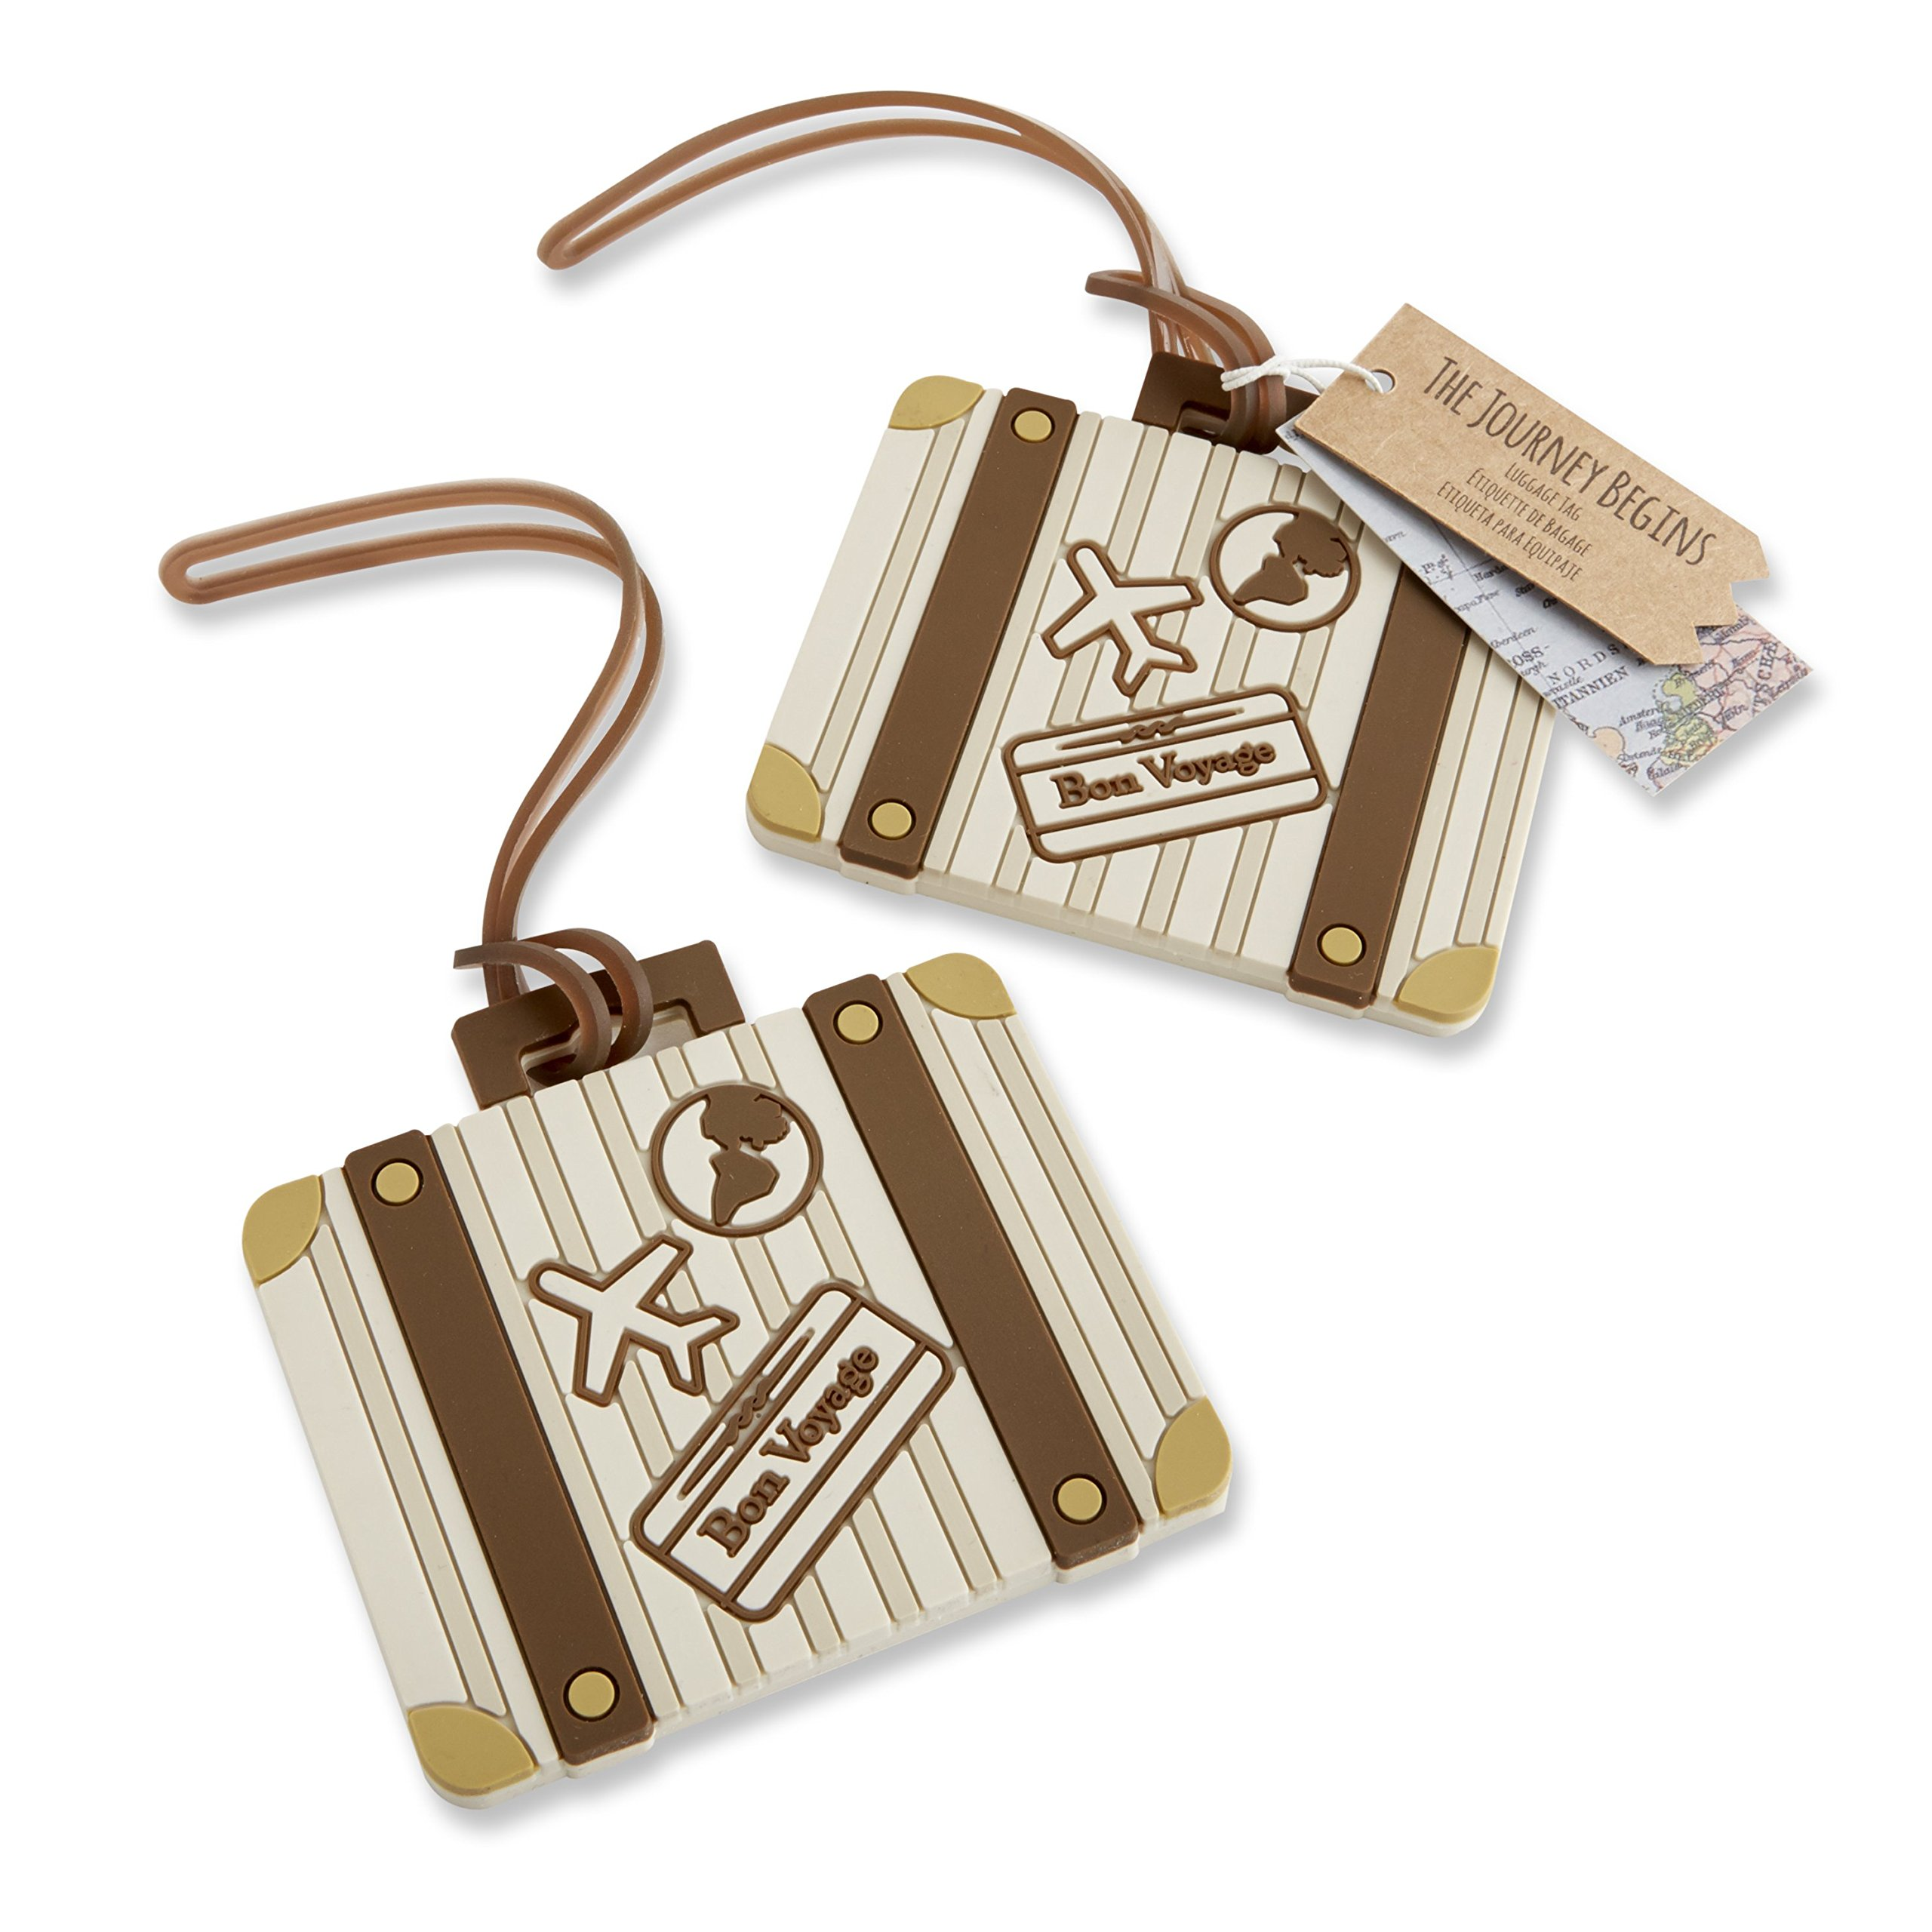 Kate Aspen Vintage Suitcase Bundle of 12 Luggage Tags, Multi-Colored by Kate Aspen